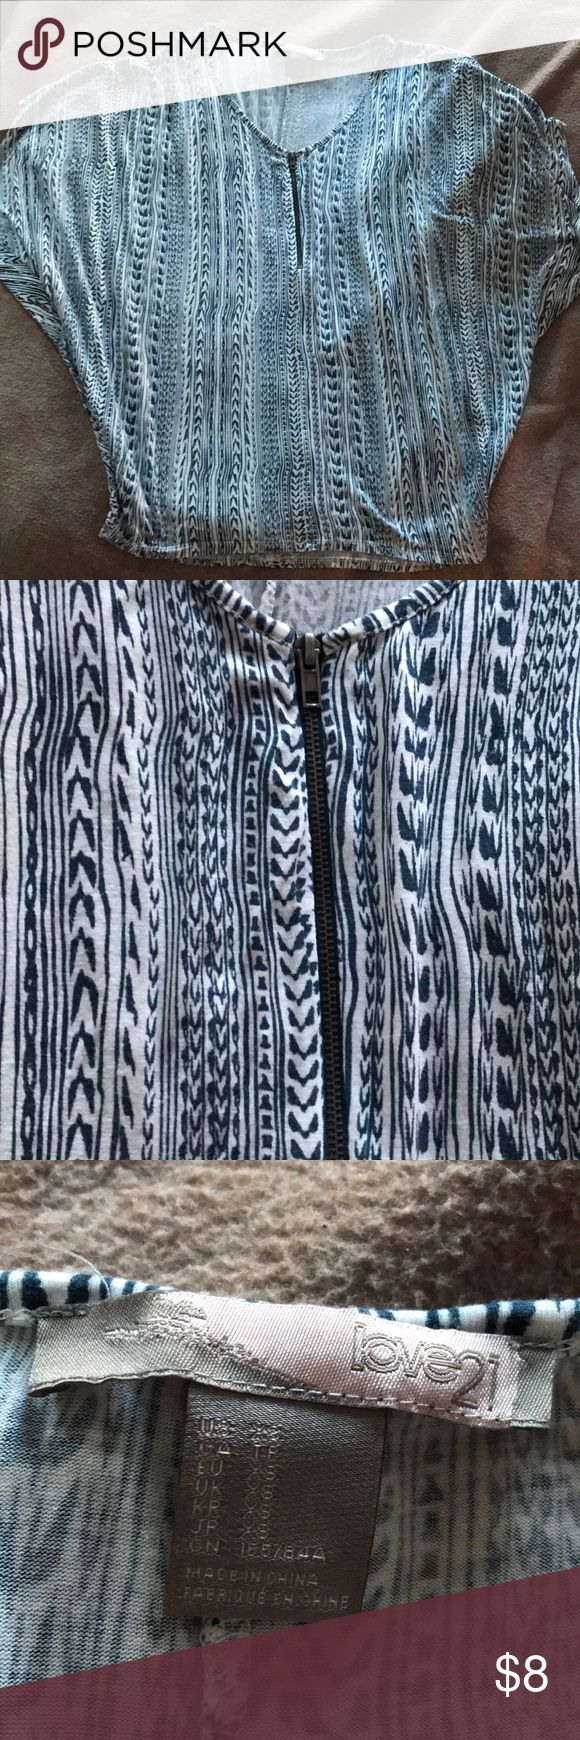 Forever 21/Love 21 Tribal Aztec Batwing Top Blue and white Aztec/Tribal Print. Super comfy and loose. Silver zipper down front. Forever 21 Tops Blouses